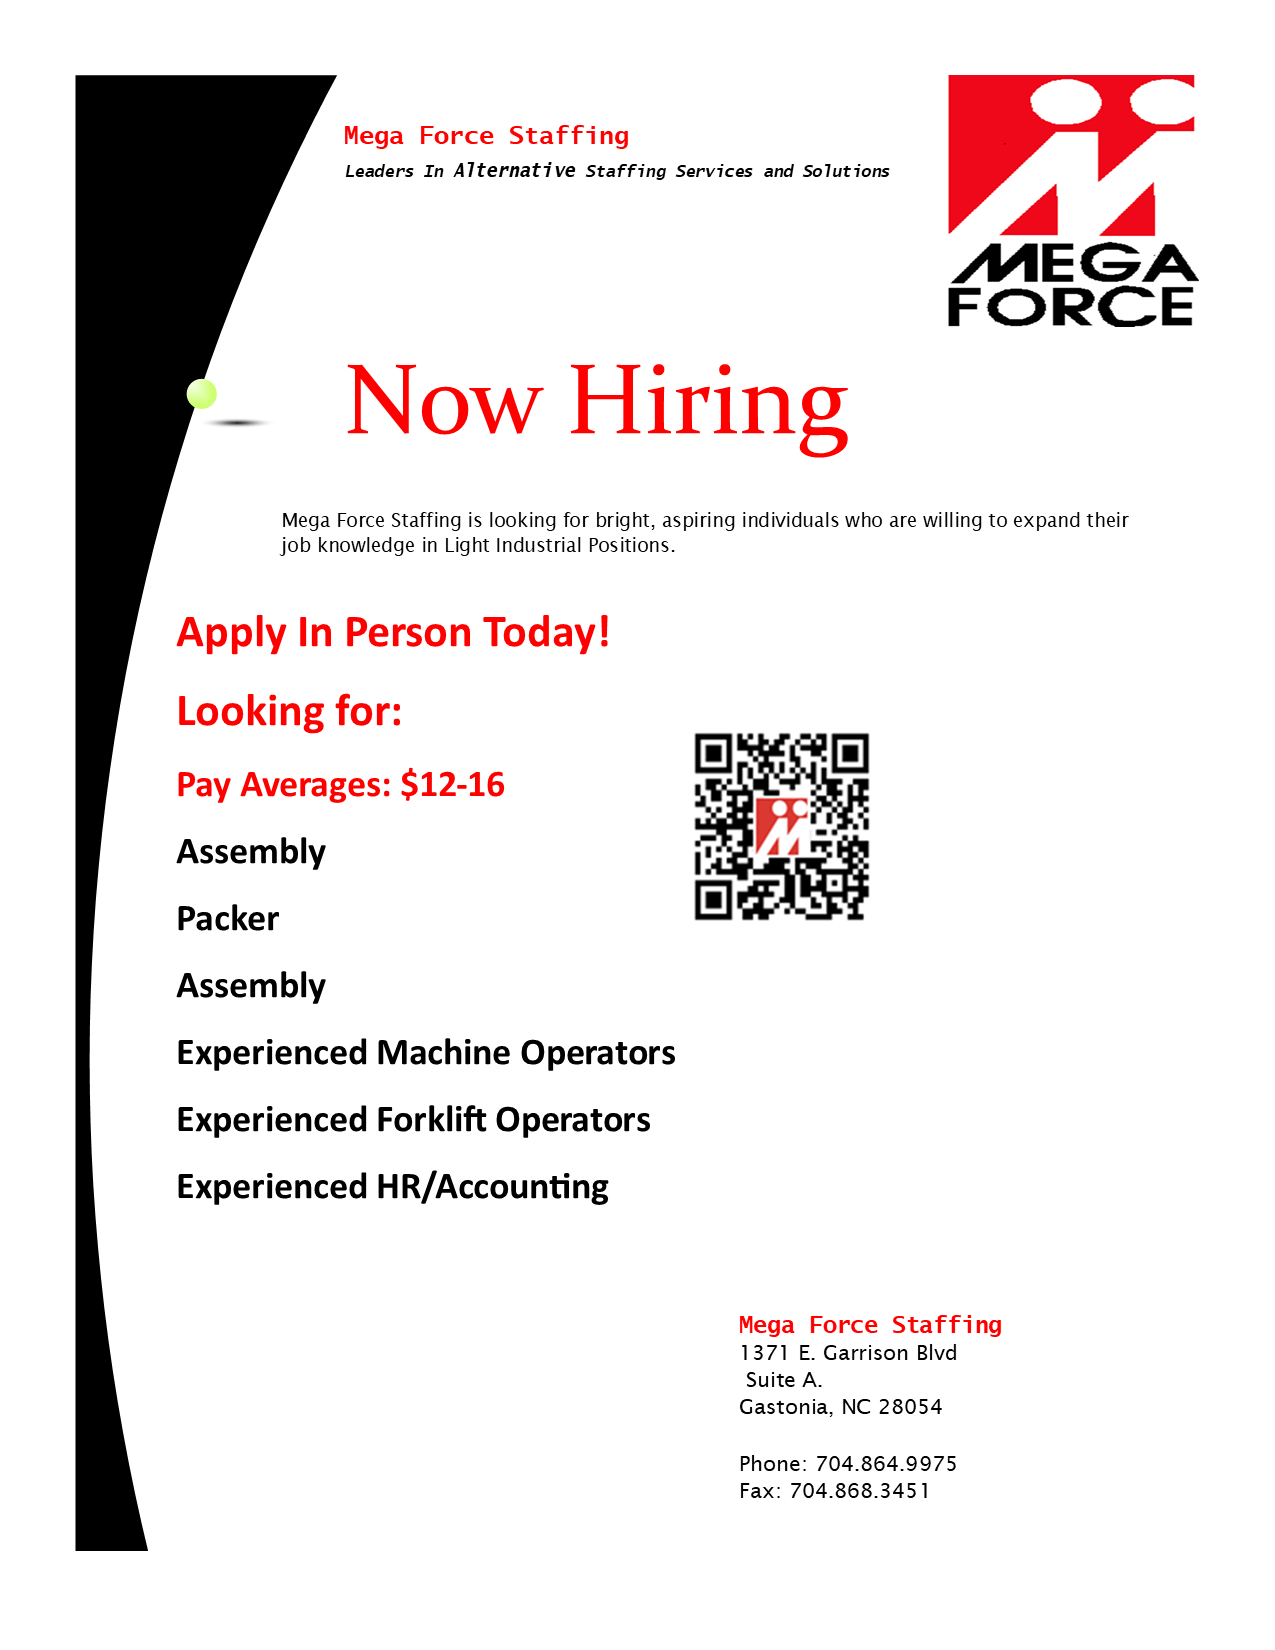 Mega Force Staffing is hiring for several positions